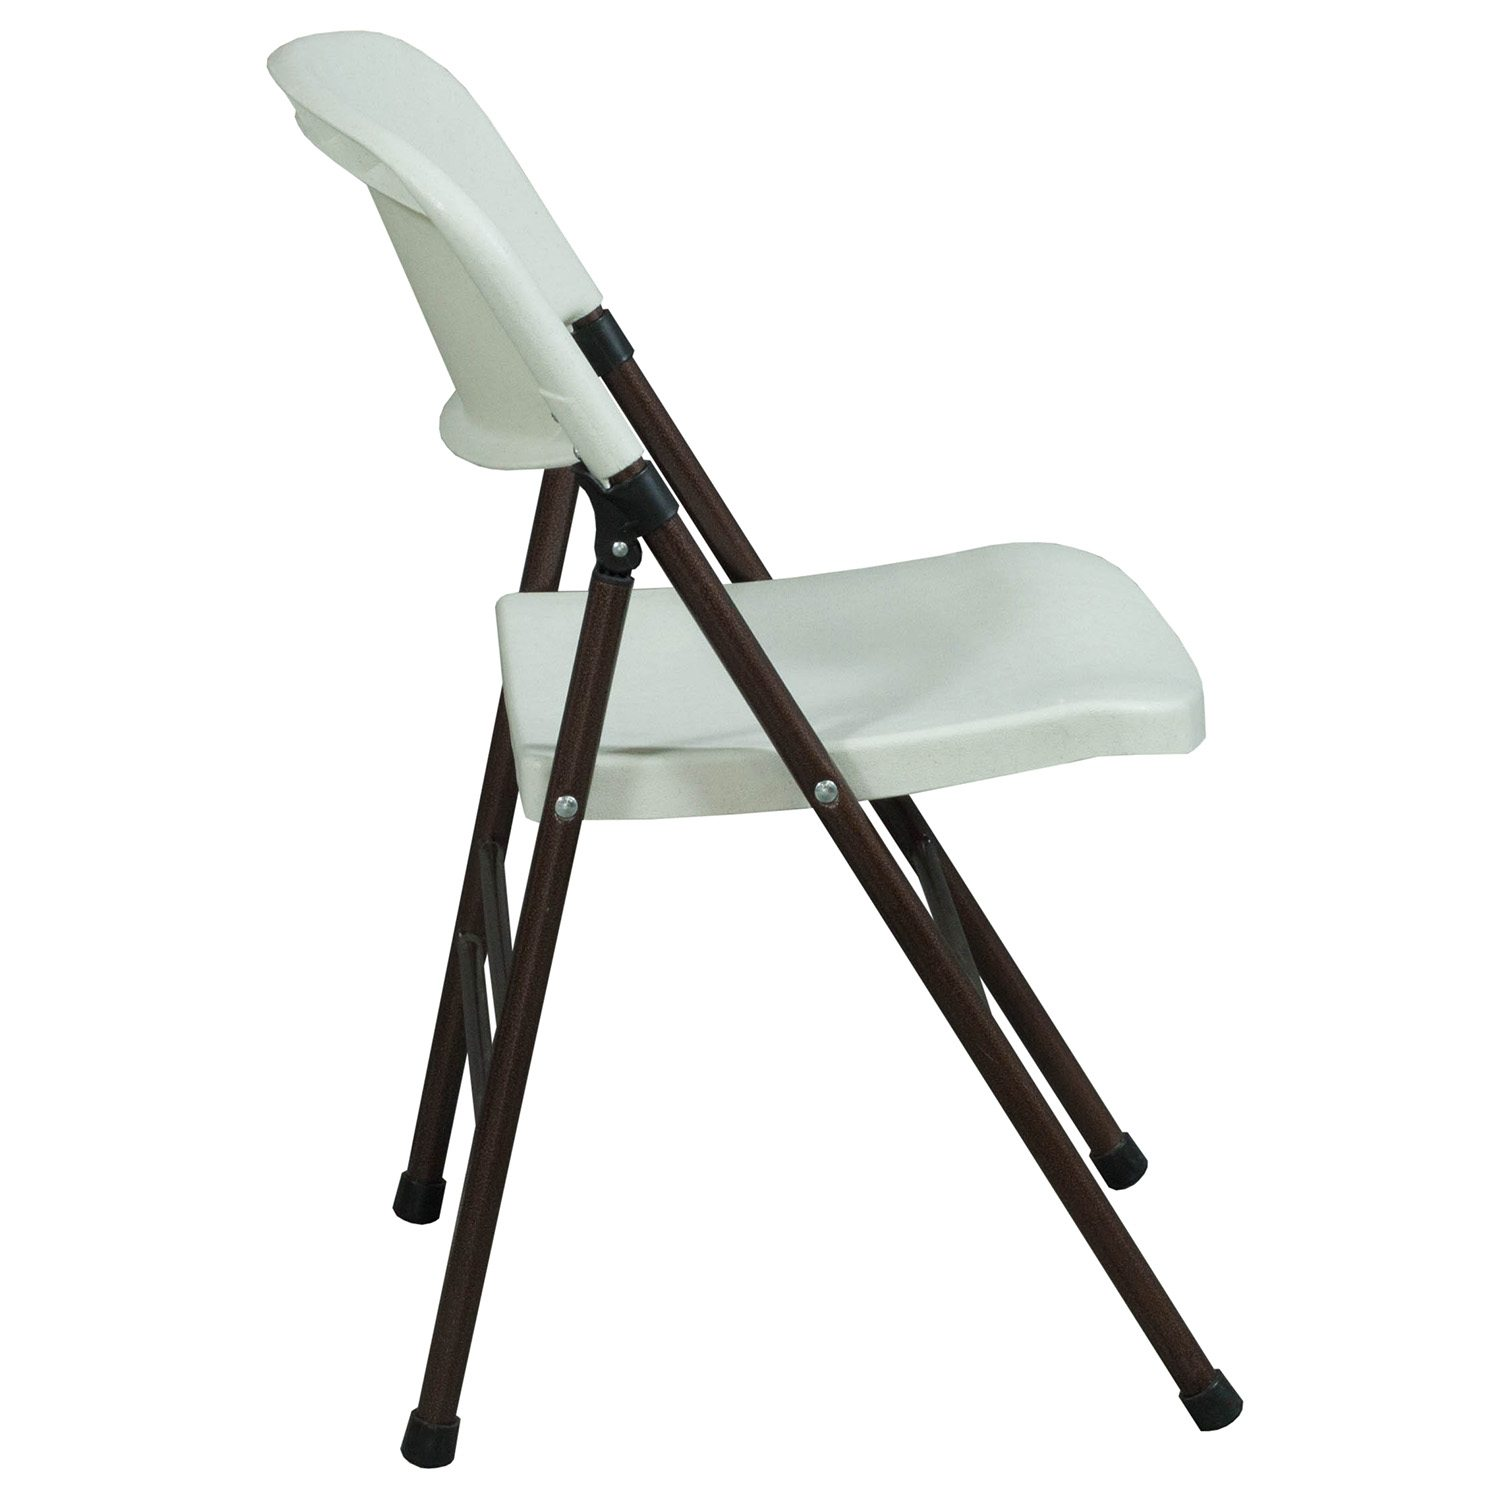 Folding White Chairs Samsonite Used Plastic Folding Chair White National